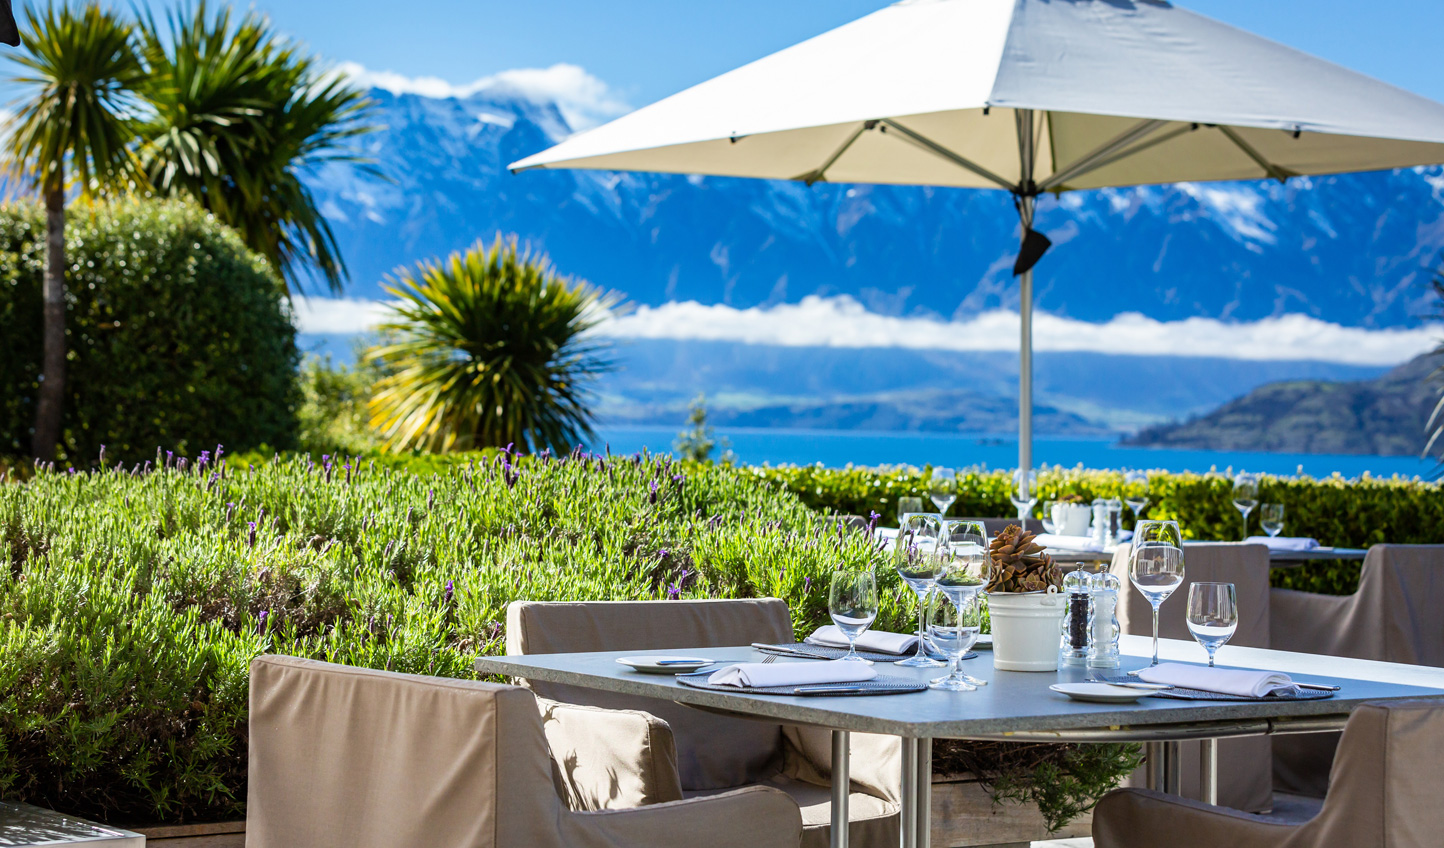 Dine alfresco amid your spectacular surroundings